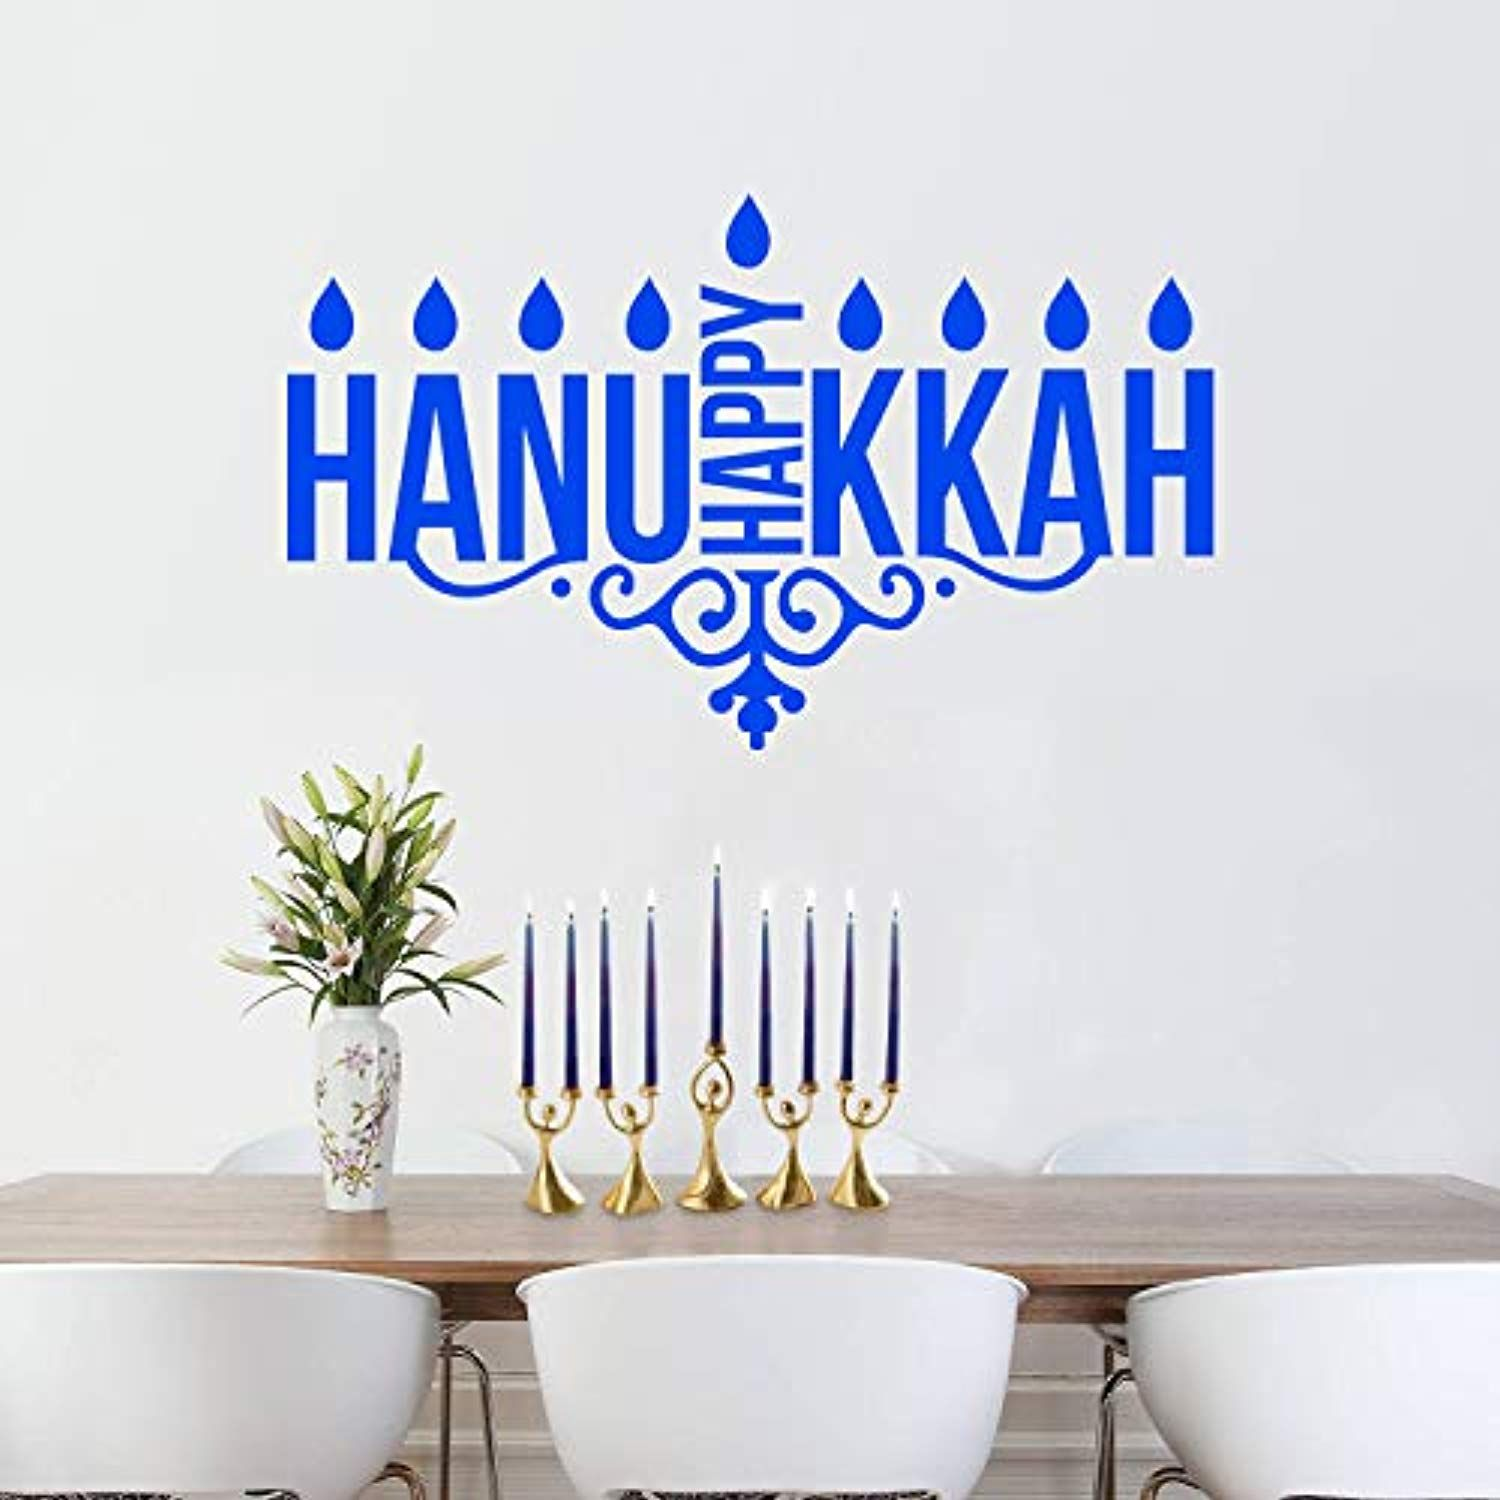 Vinyl Wall Art Decal Happy Hanukkah Candles 23 X 38 Jewish Holiday Menorah Candle Holder Shape Deco Vinyl Wall Art Decals Decal Wall Art Vinyl Wall Art